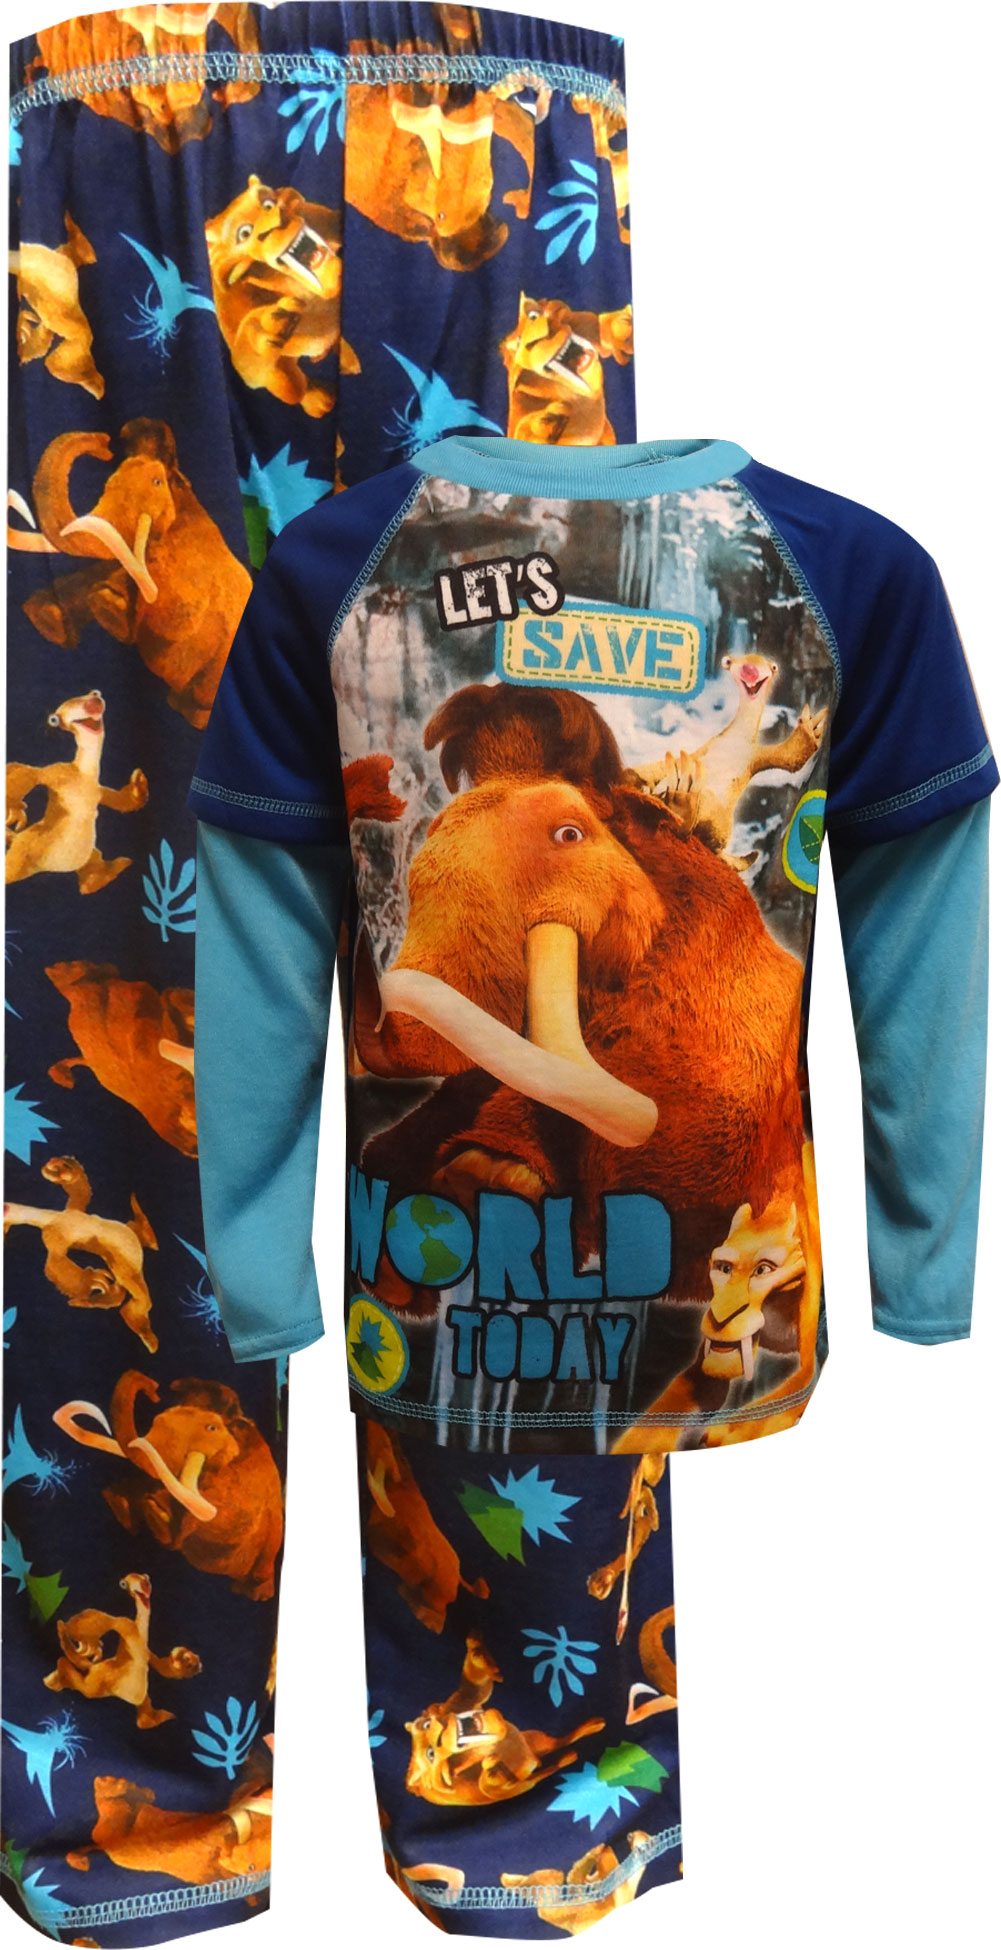 Image of Ice Age Collision Course Pajamas for boys